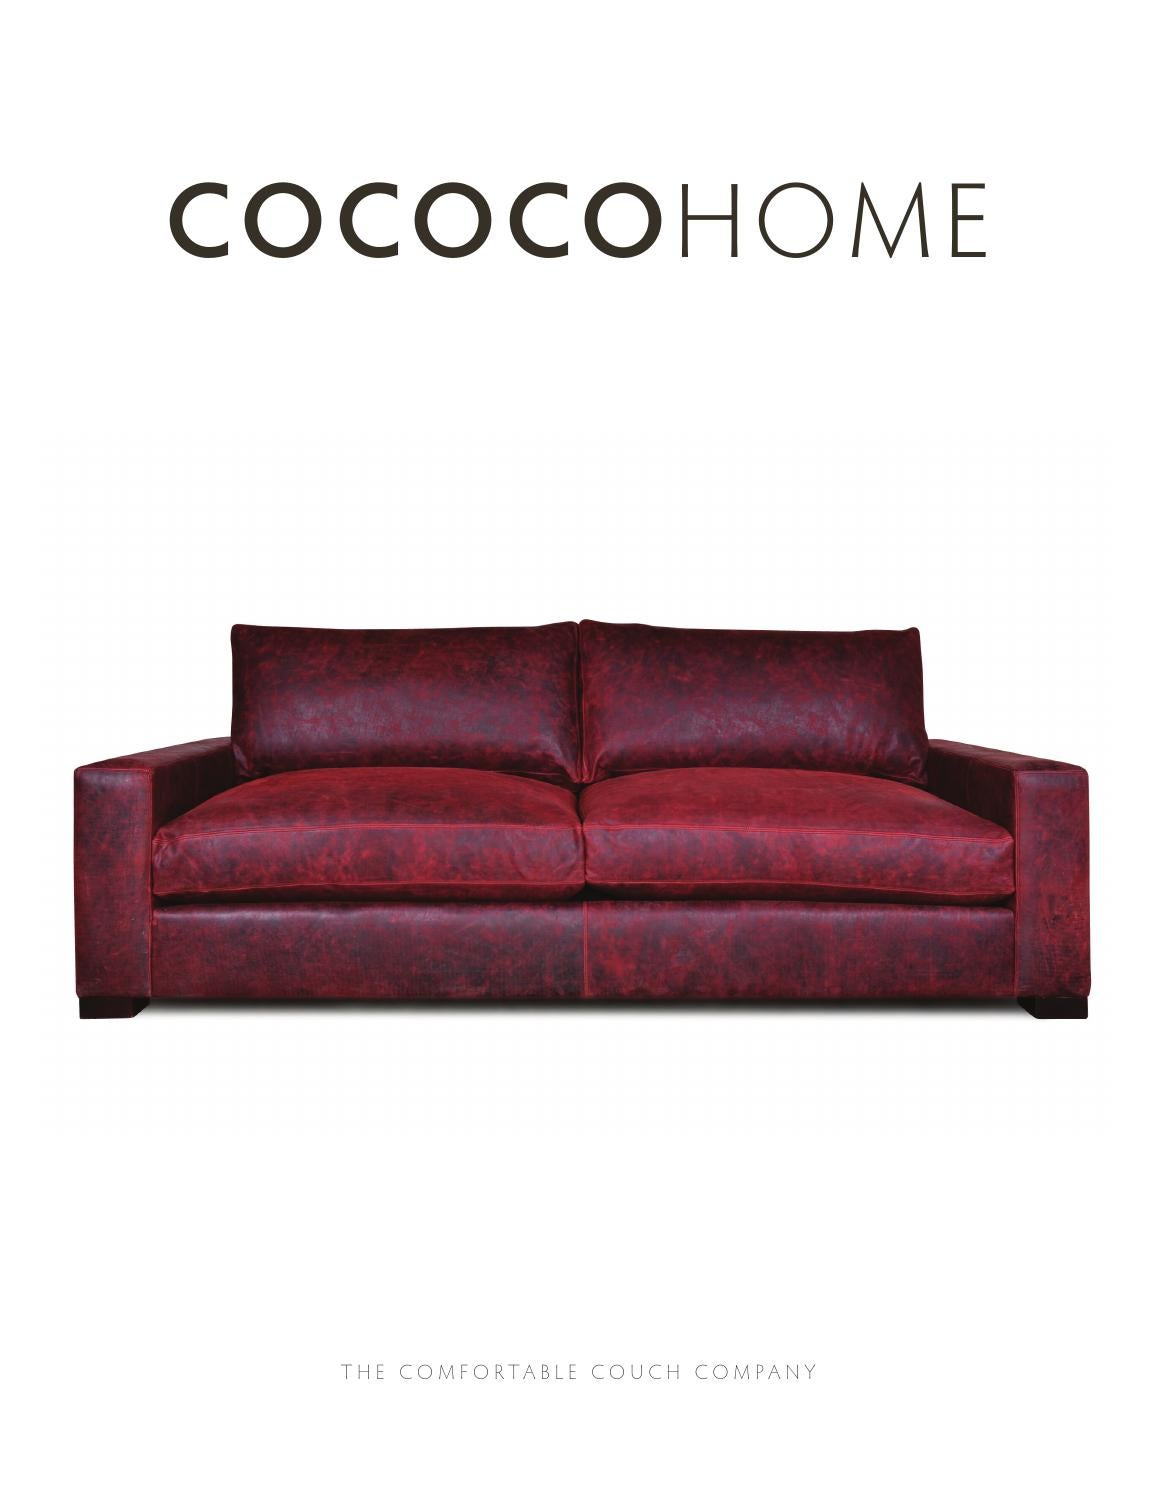 COCOCOHome Furniture Catalog By CoCoCo Home   Issuu